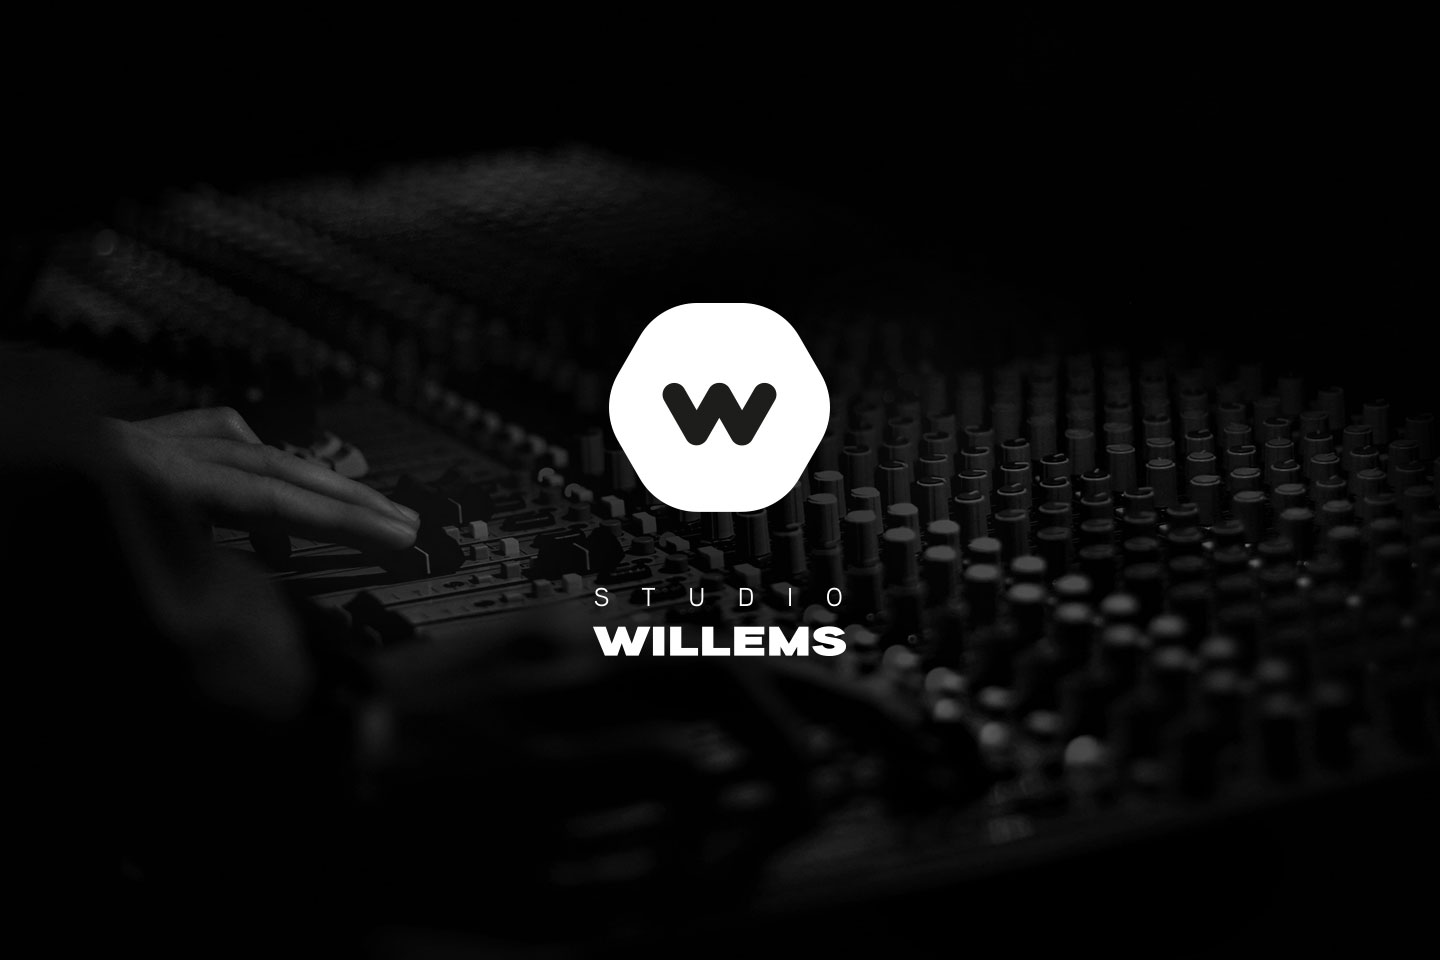 Studio Willems